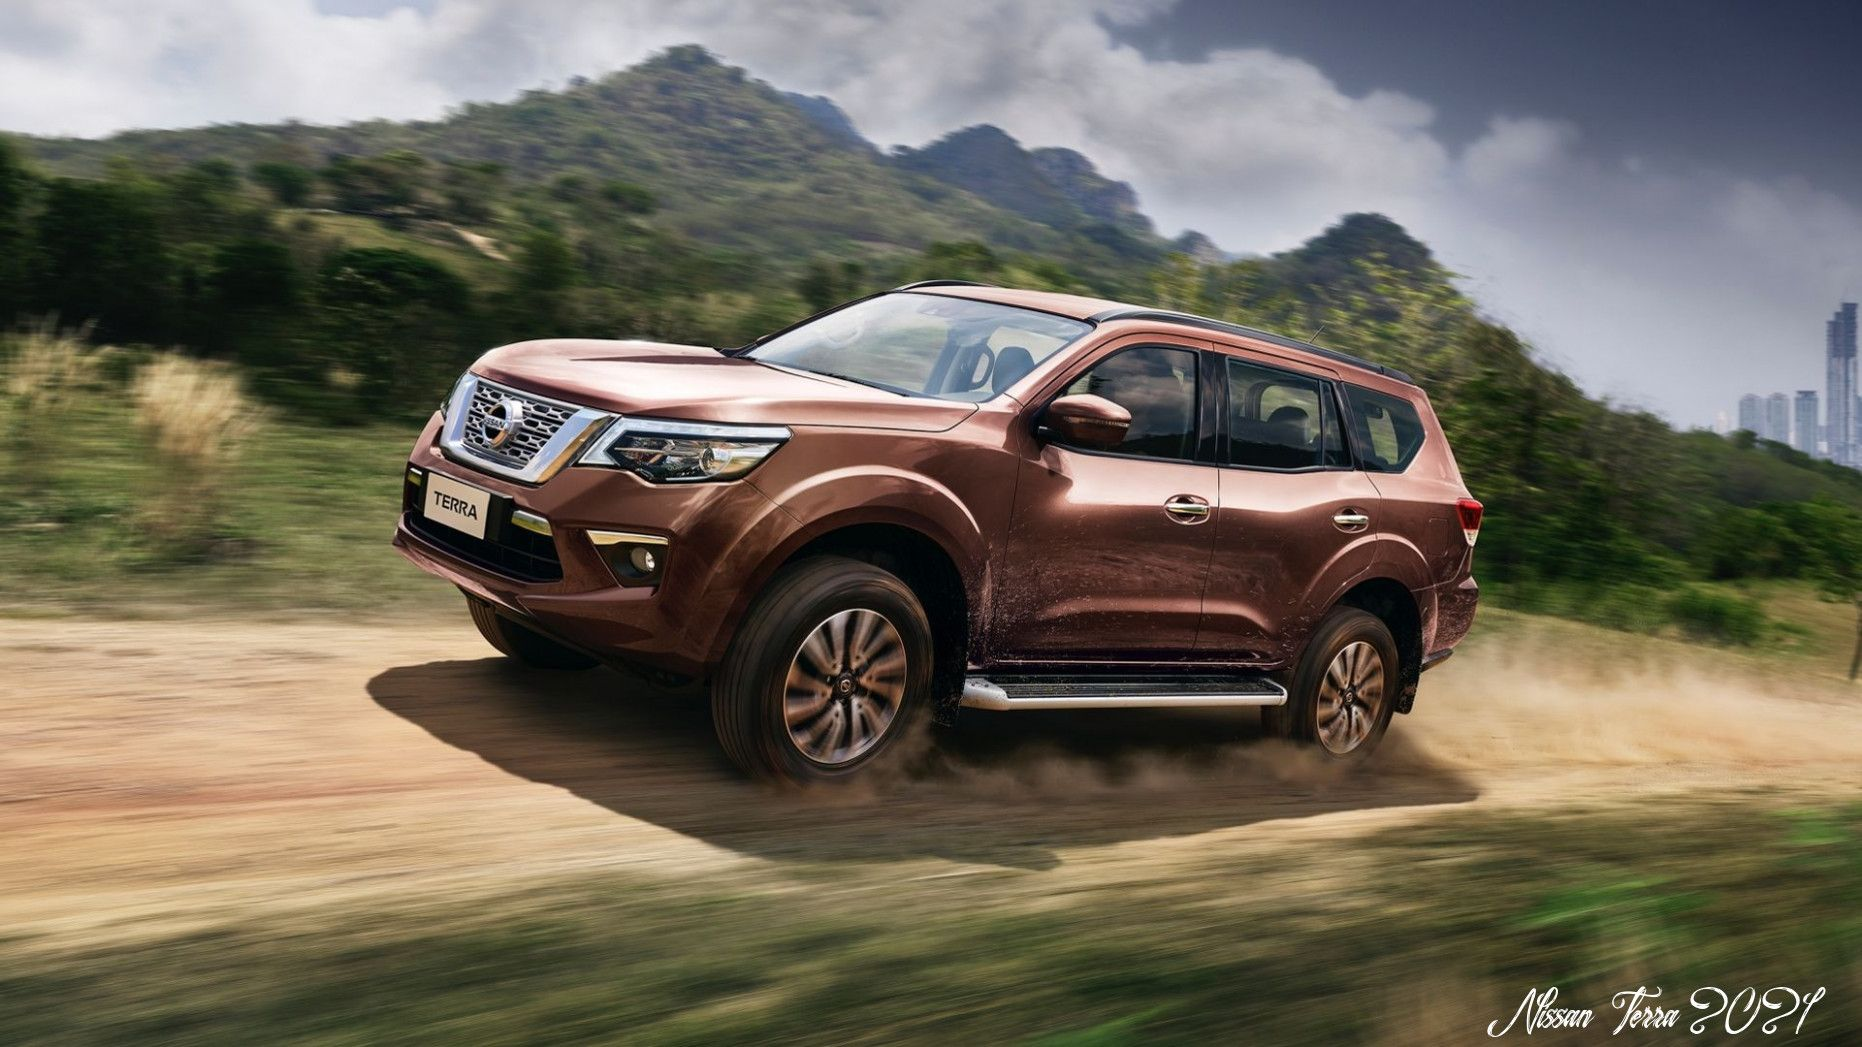 Nissan Terra 2021 Exterior And Interior In 2020 Nissan Suv Fuel Economy